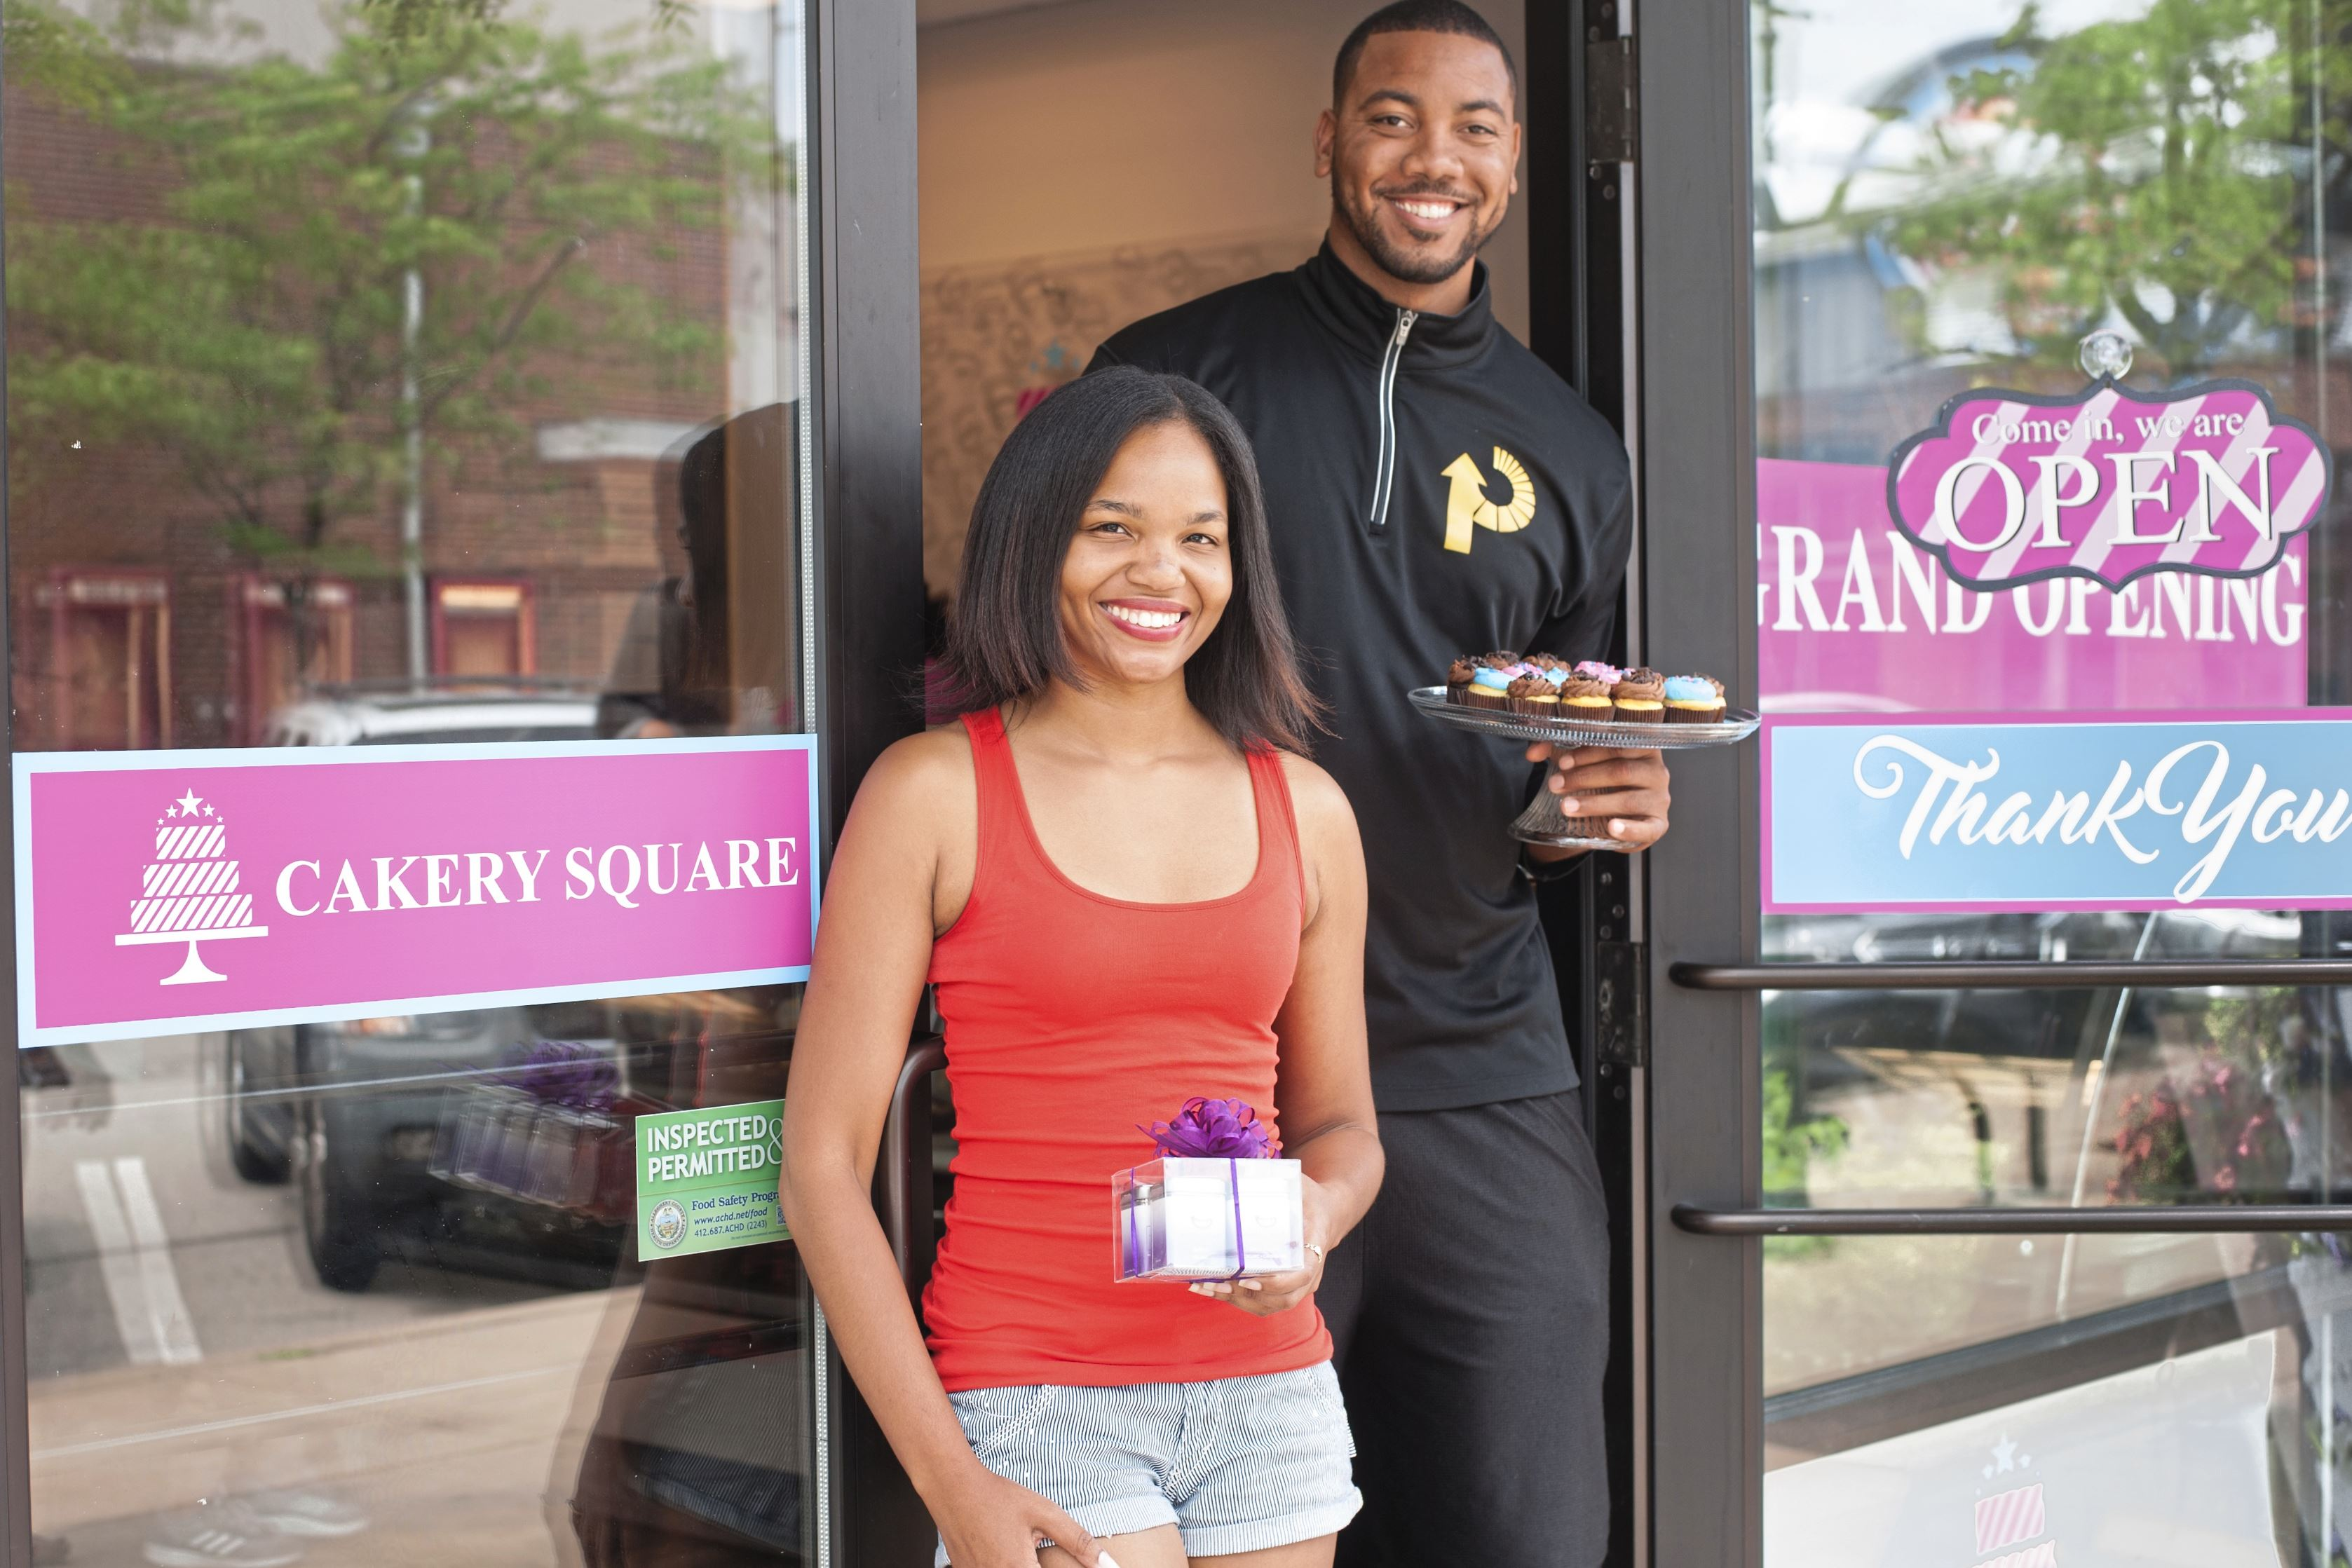 20170612smsCakery01 Former Steeler Wes Lyons, right, and his business partner and University of Pittsburgh graduate Amber Greene at their new business, Cakery Square, in The Waterfront shopping center in Homestead.